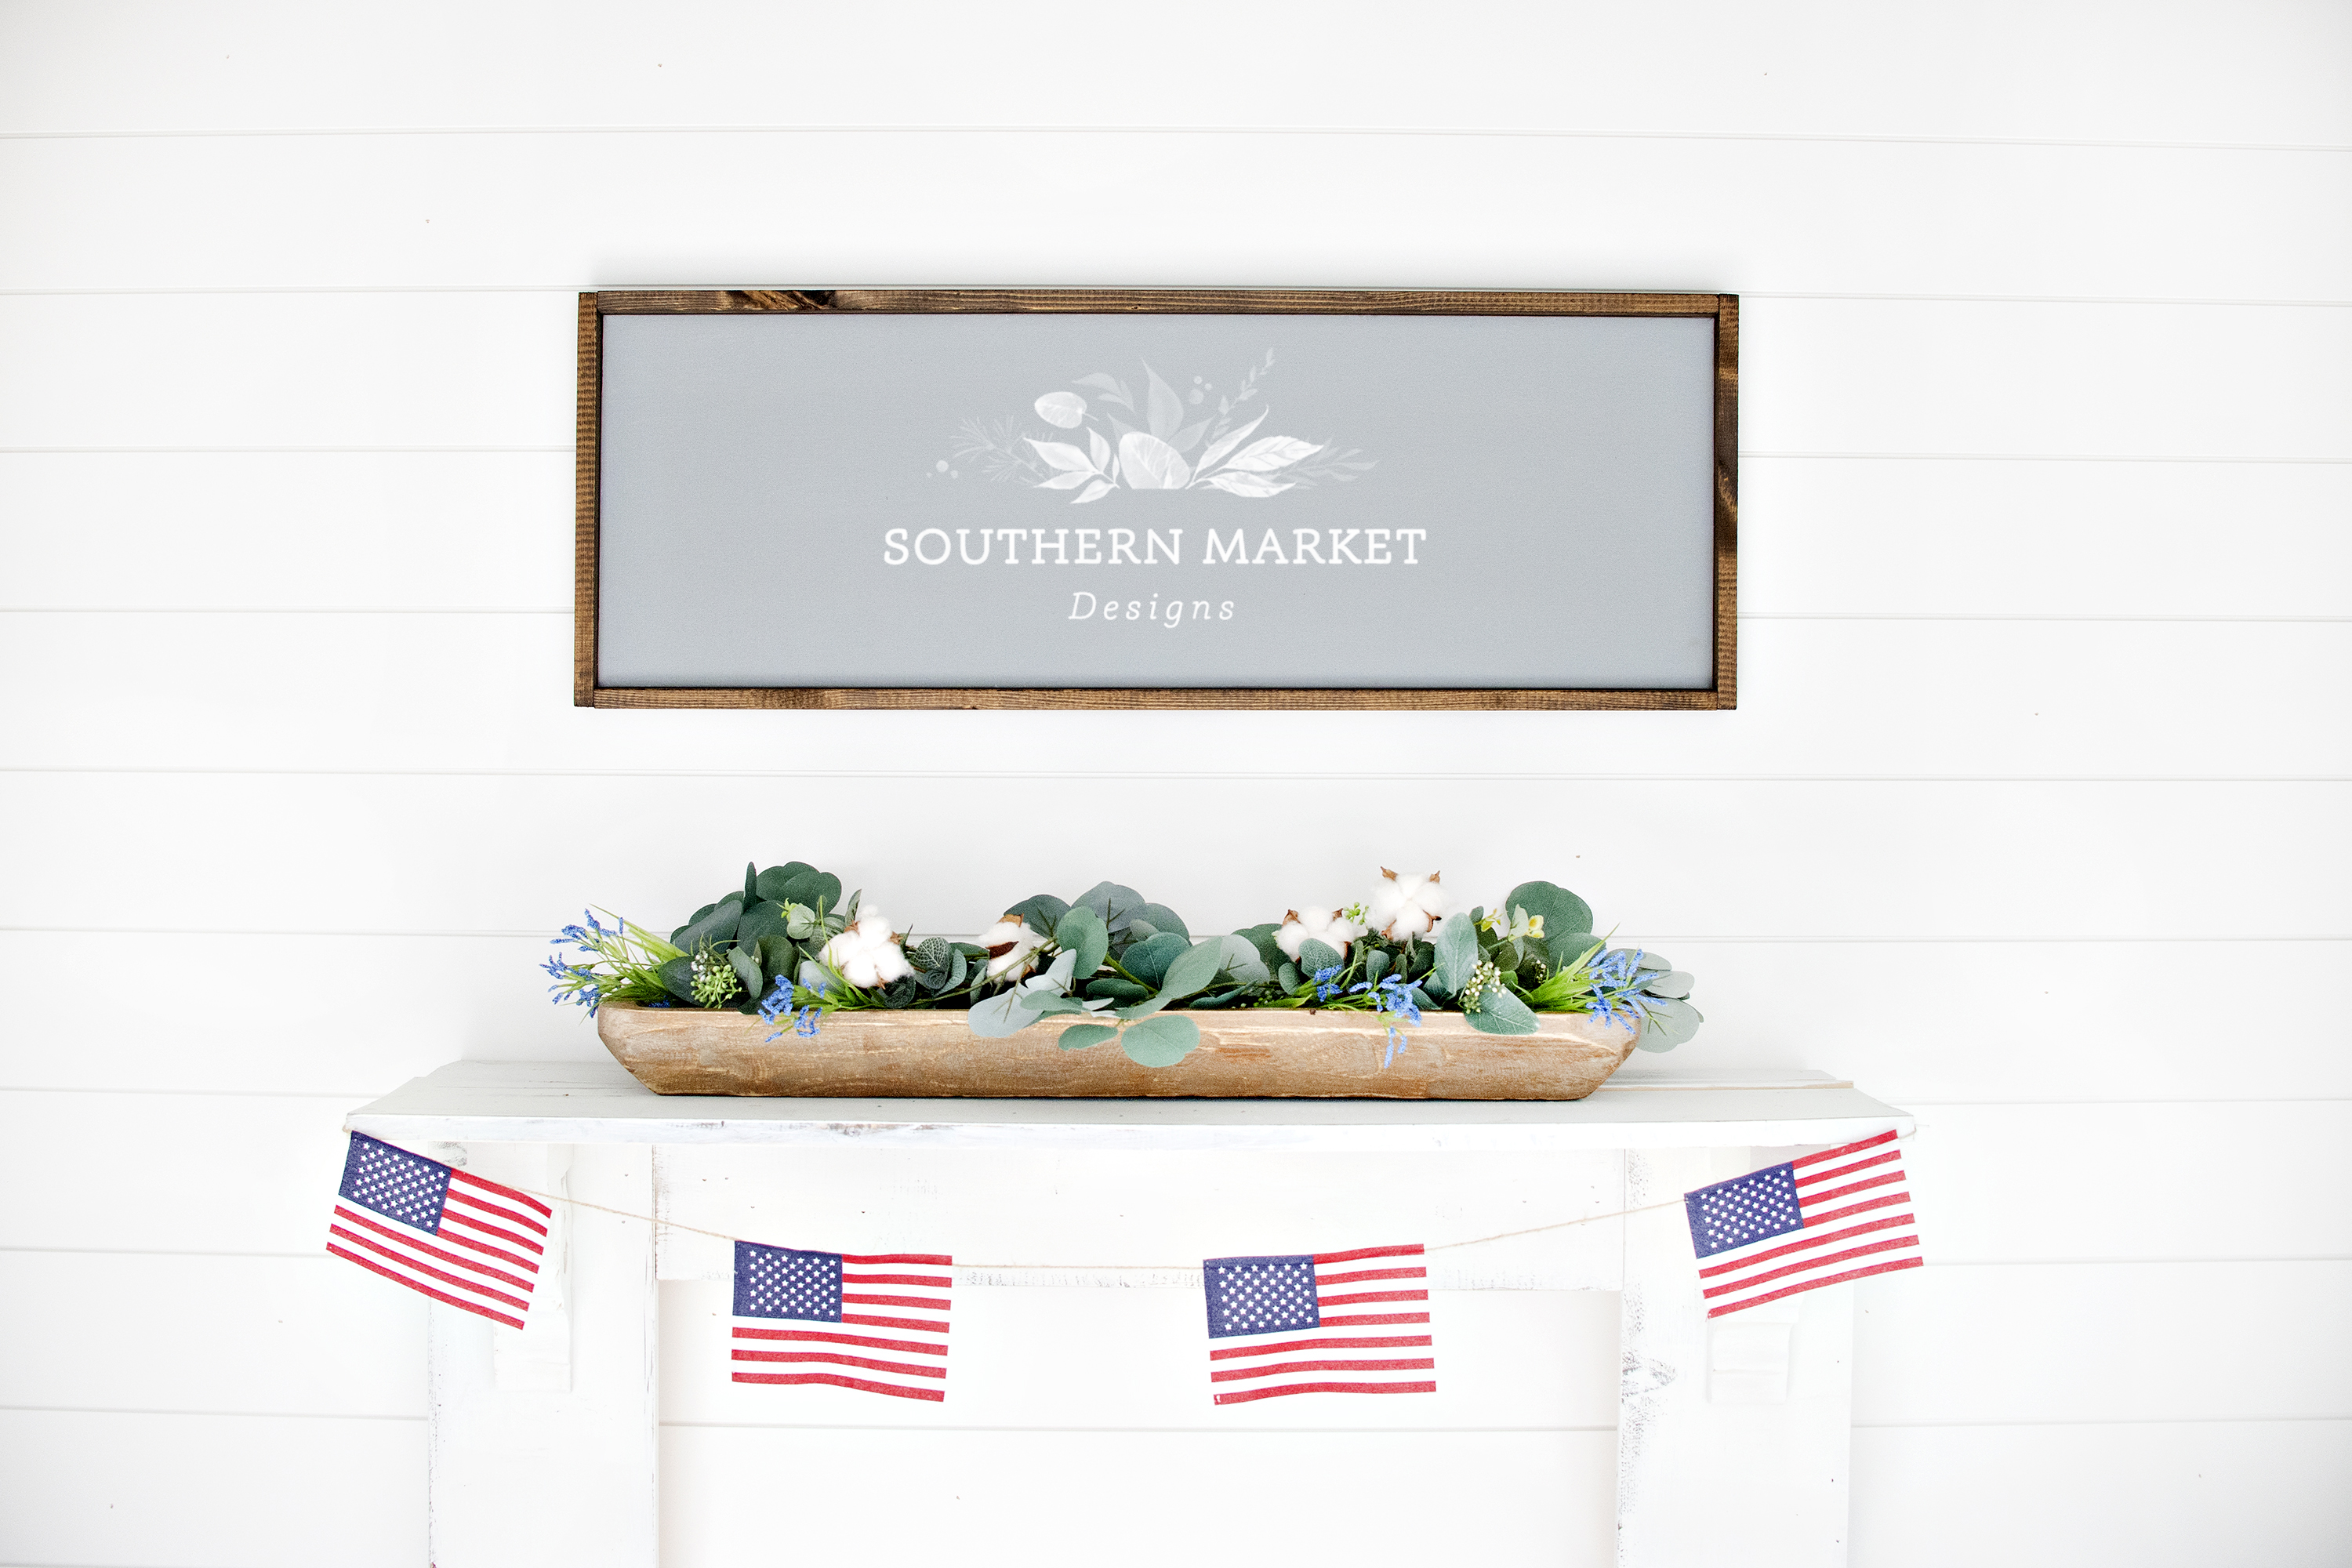 Patriotic Summer Wood 12x36 Sign Mock Up Stock Photo example image 1